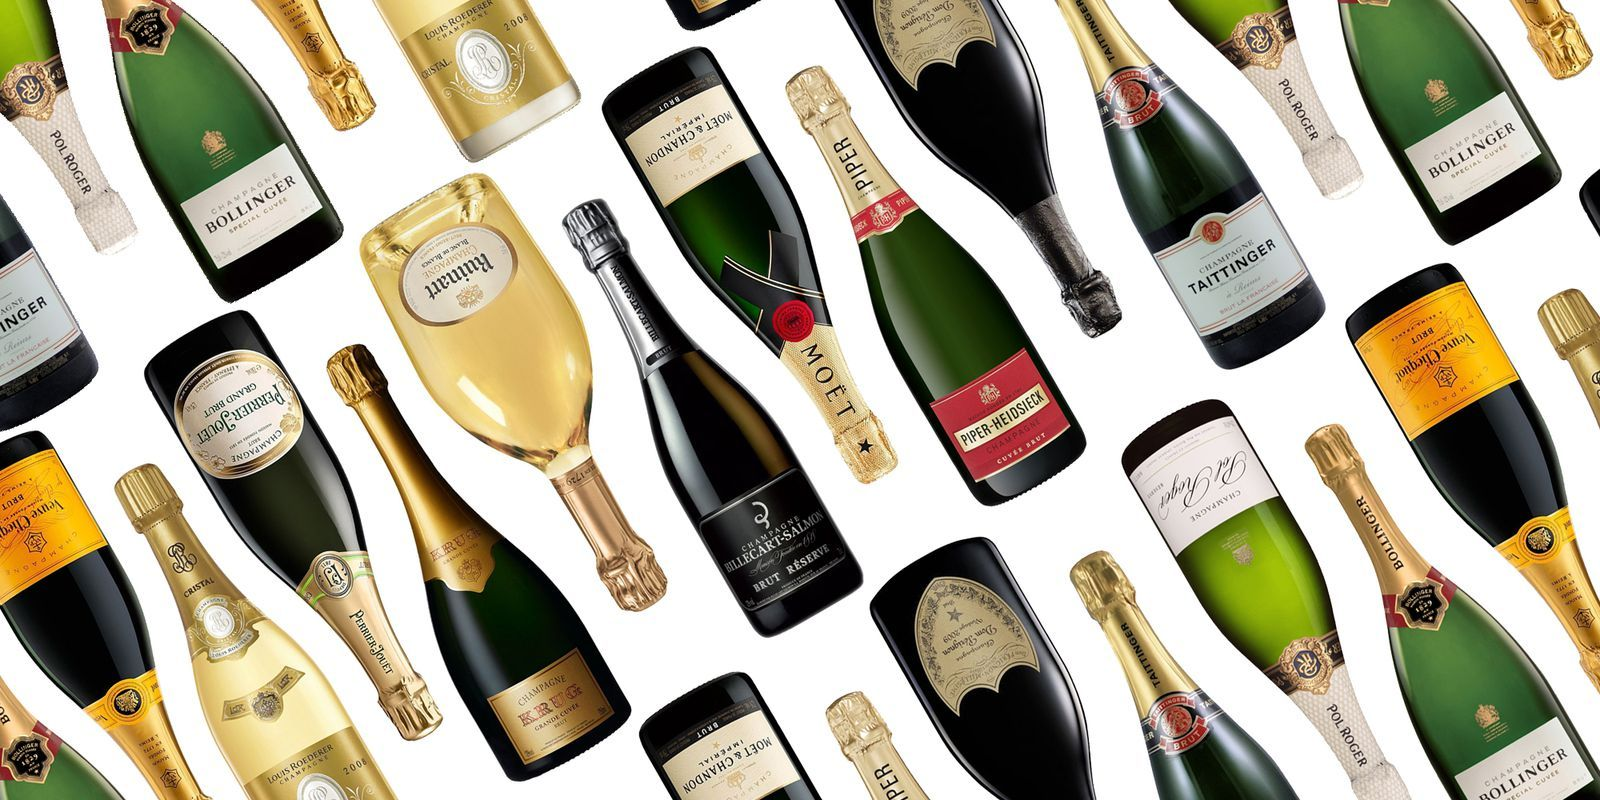 Heres what champagne to buy for your next celebration